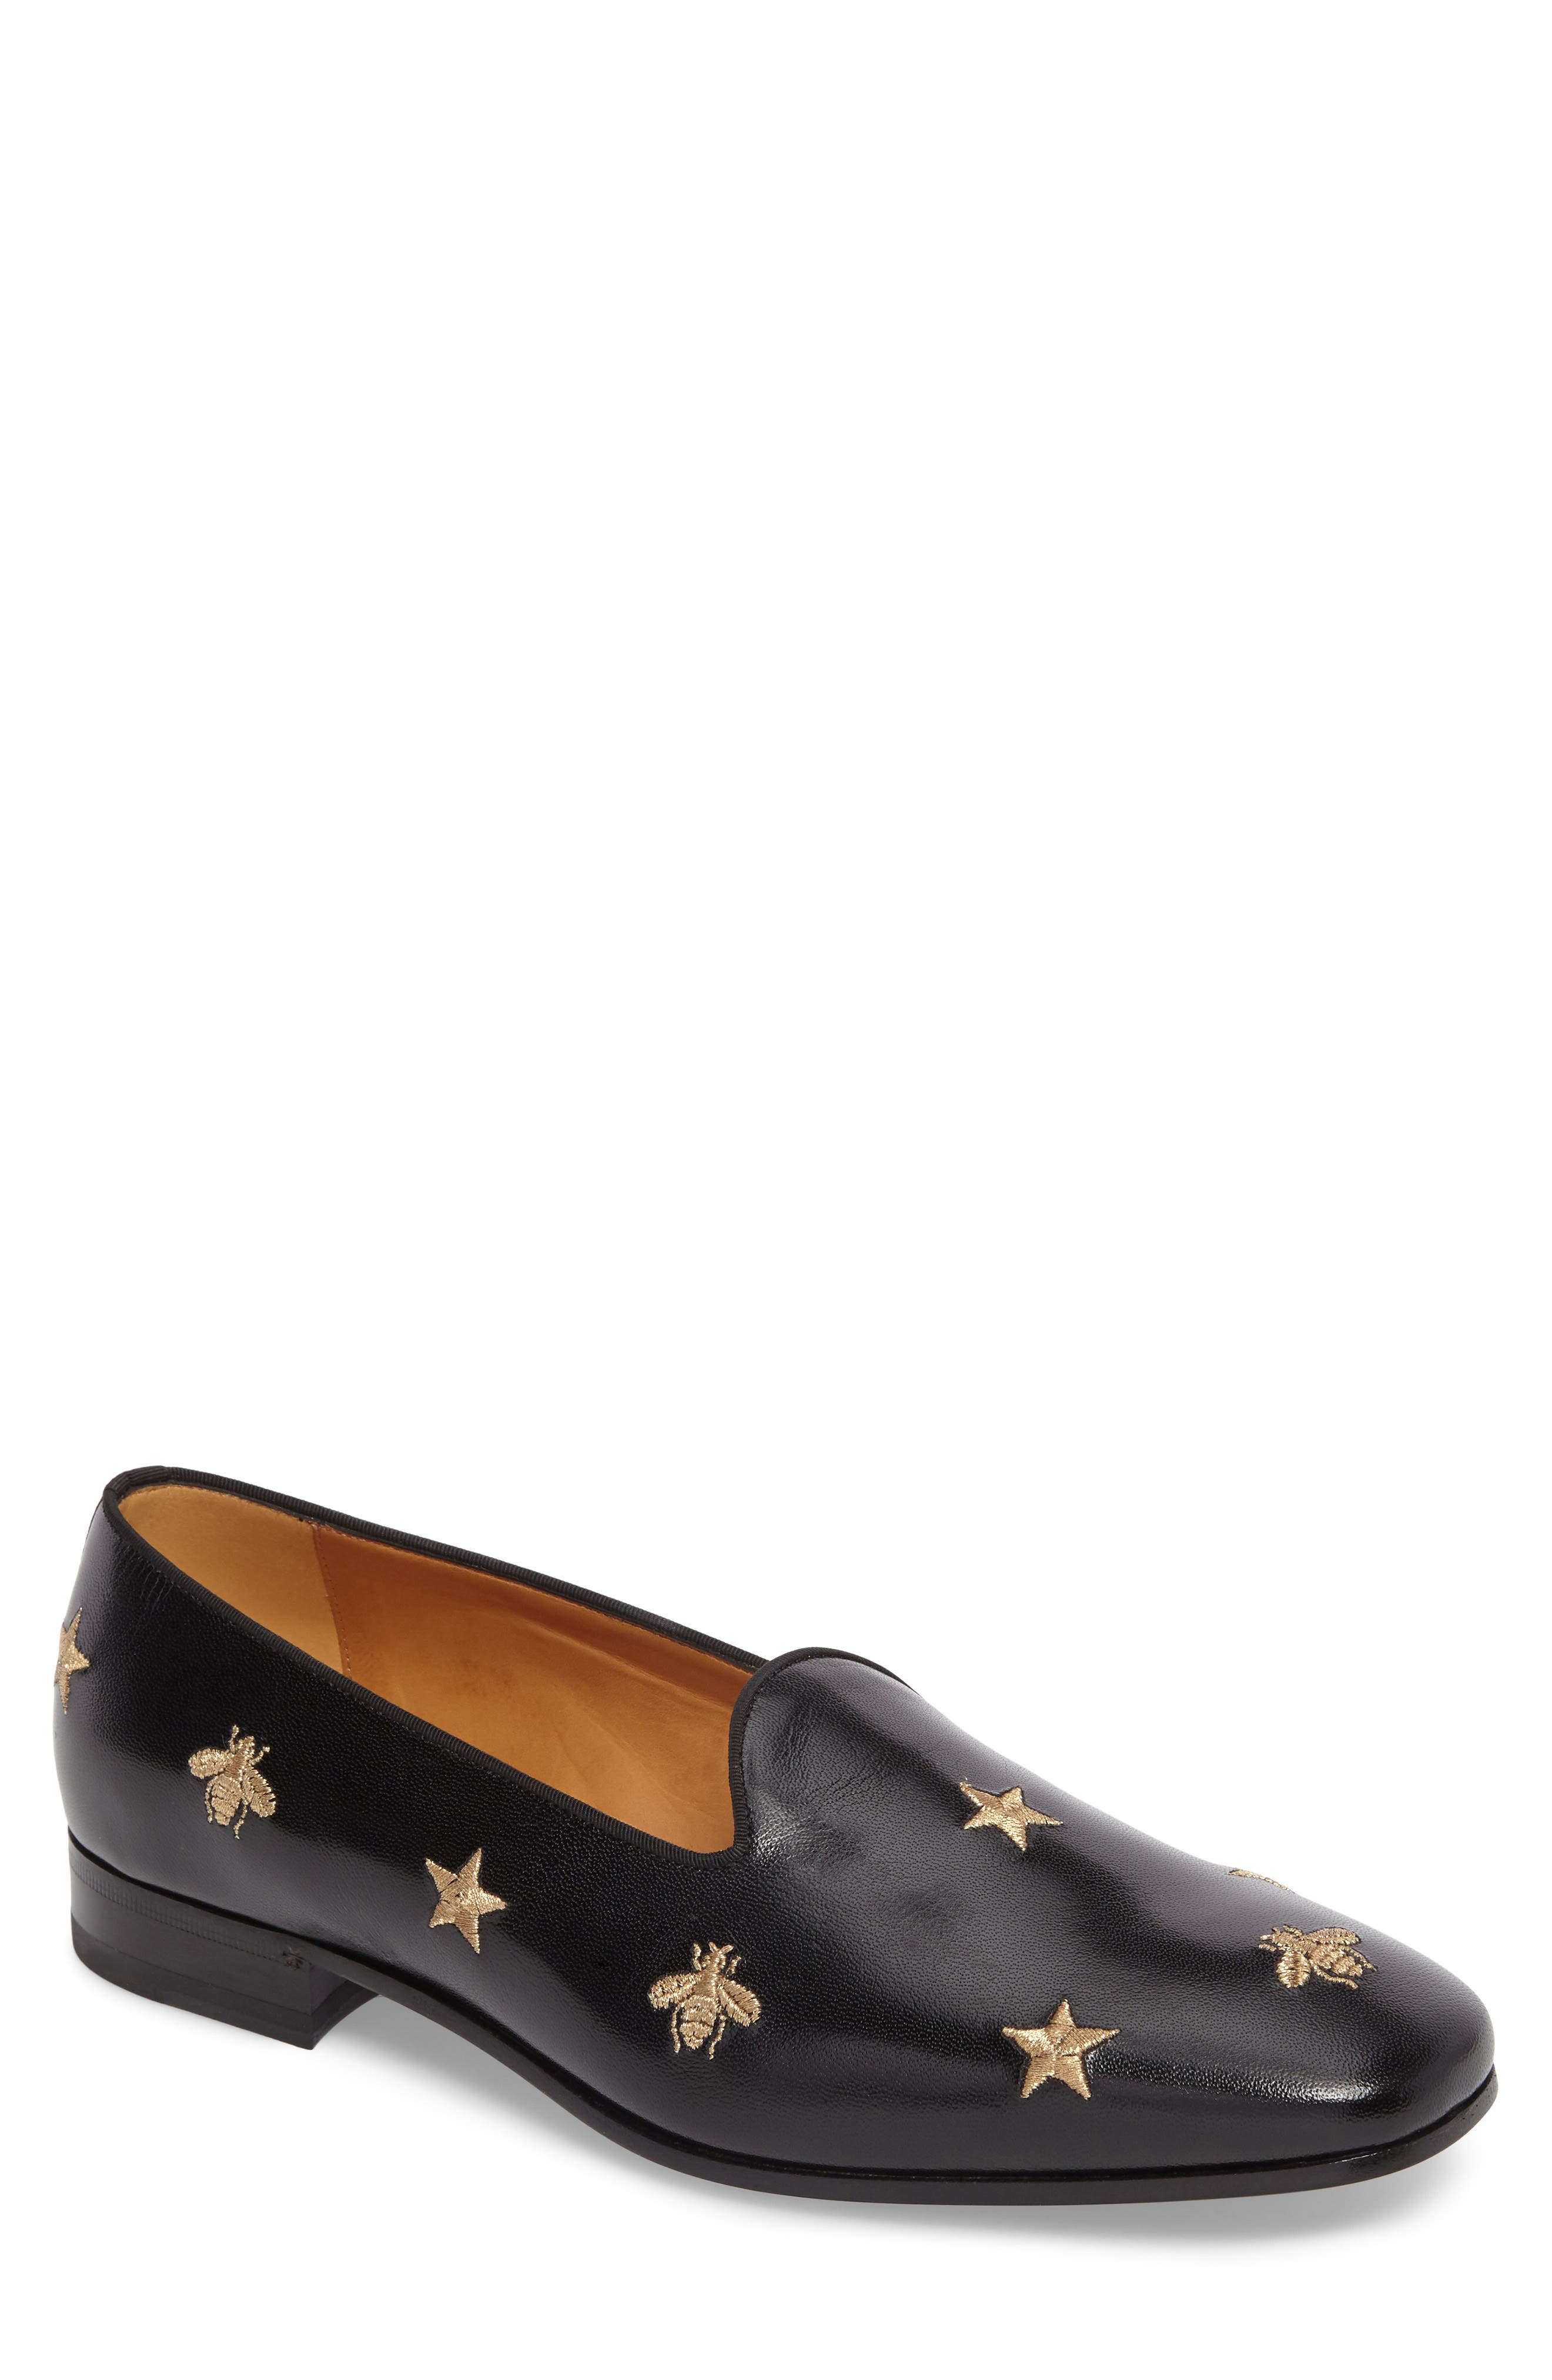 Embroidered Leather Loafer,                             Main thumbnail 1, color,                             001